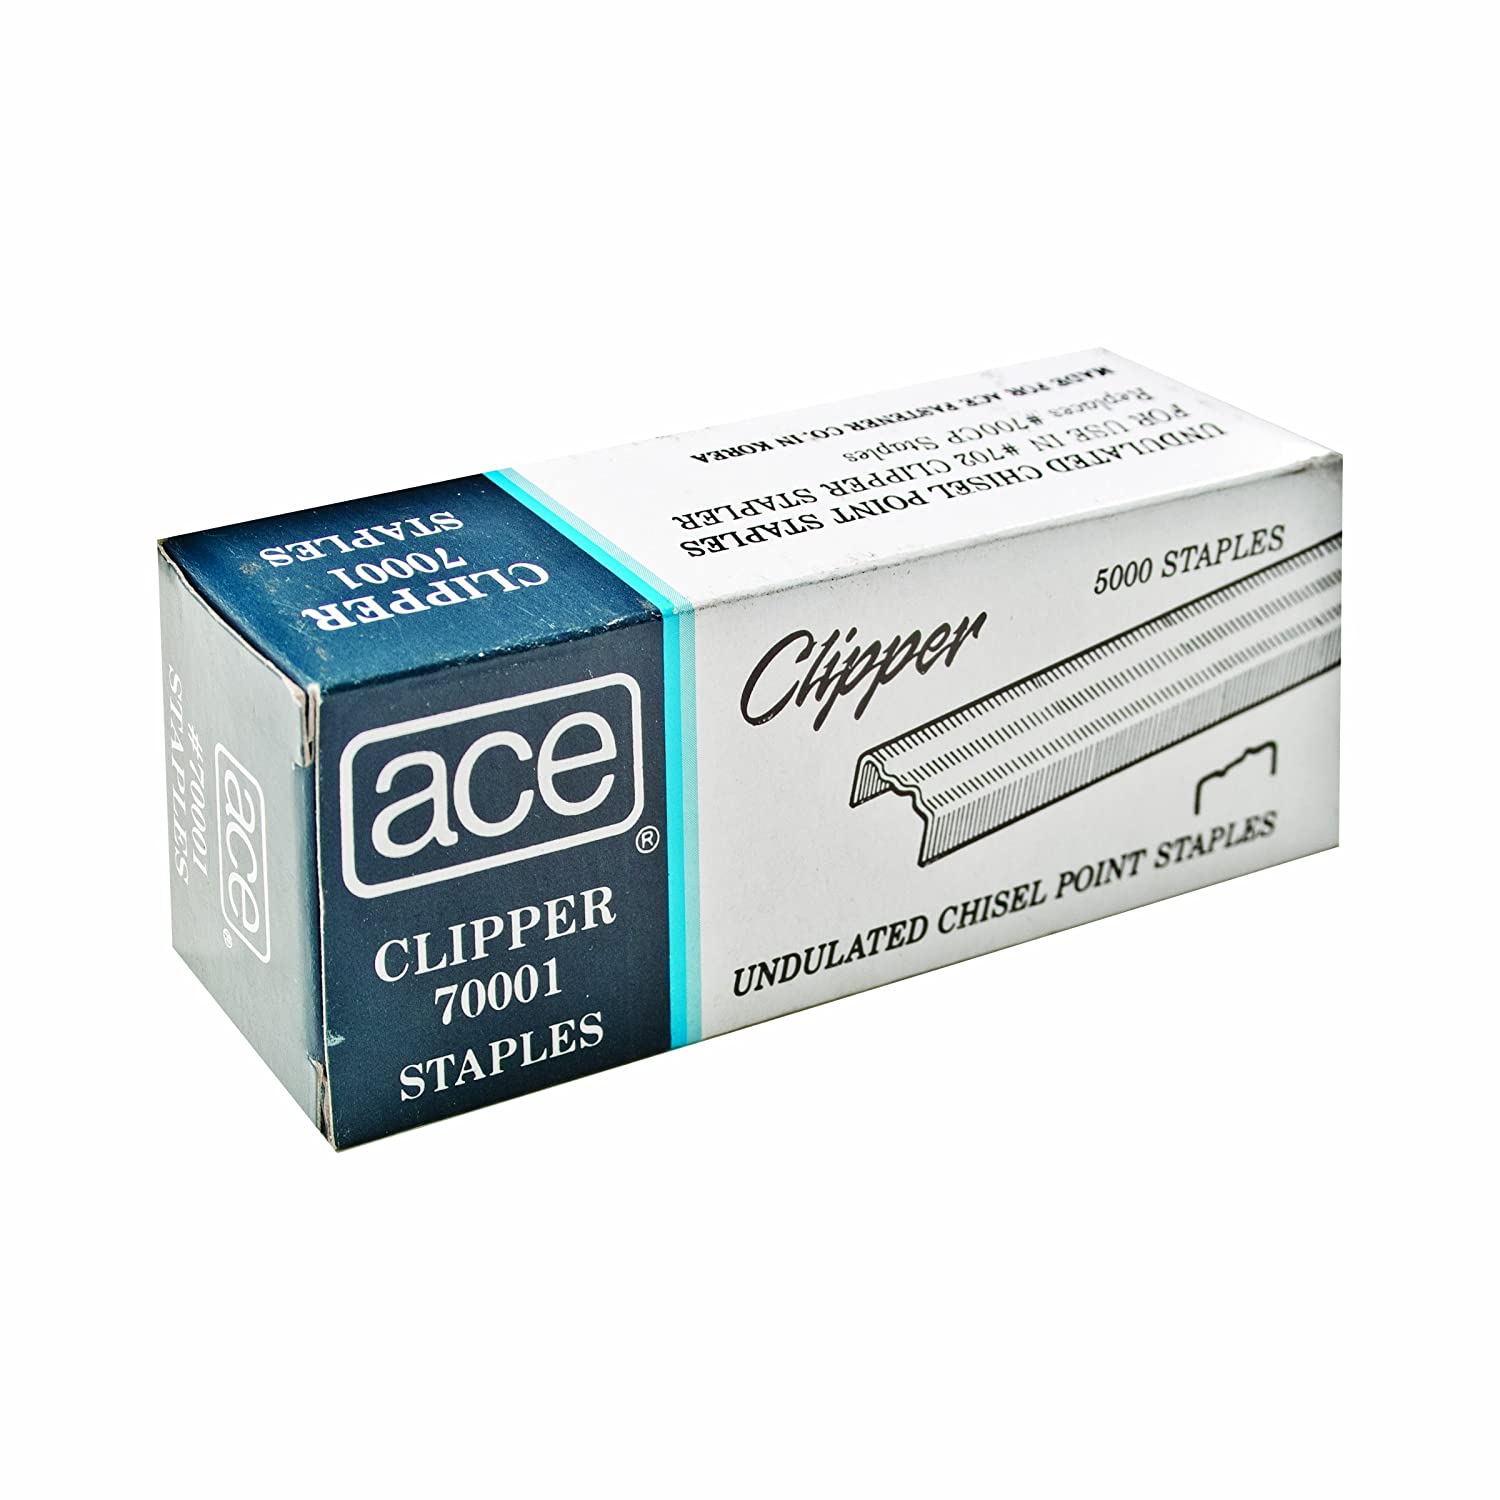 ACE Undulated Clipper Staples for 07020, Box of 5,000, ACE70001